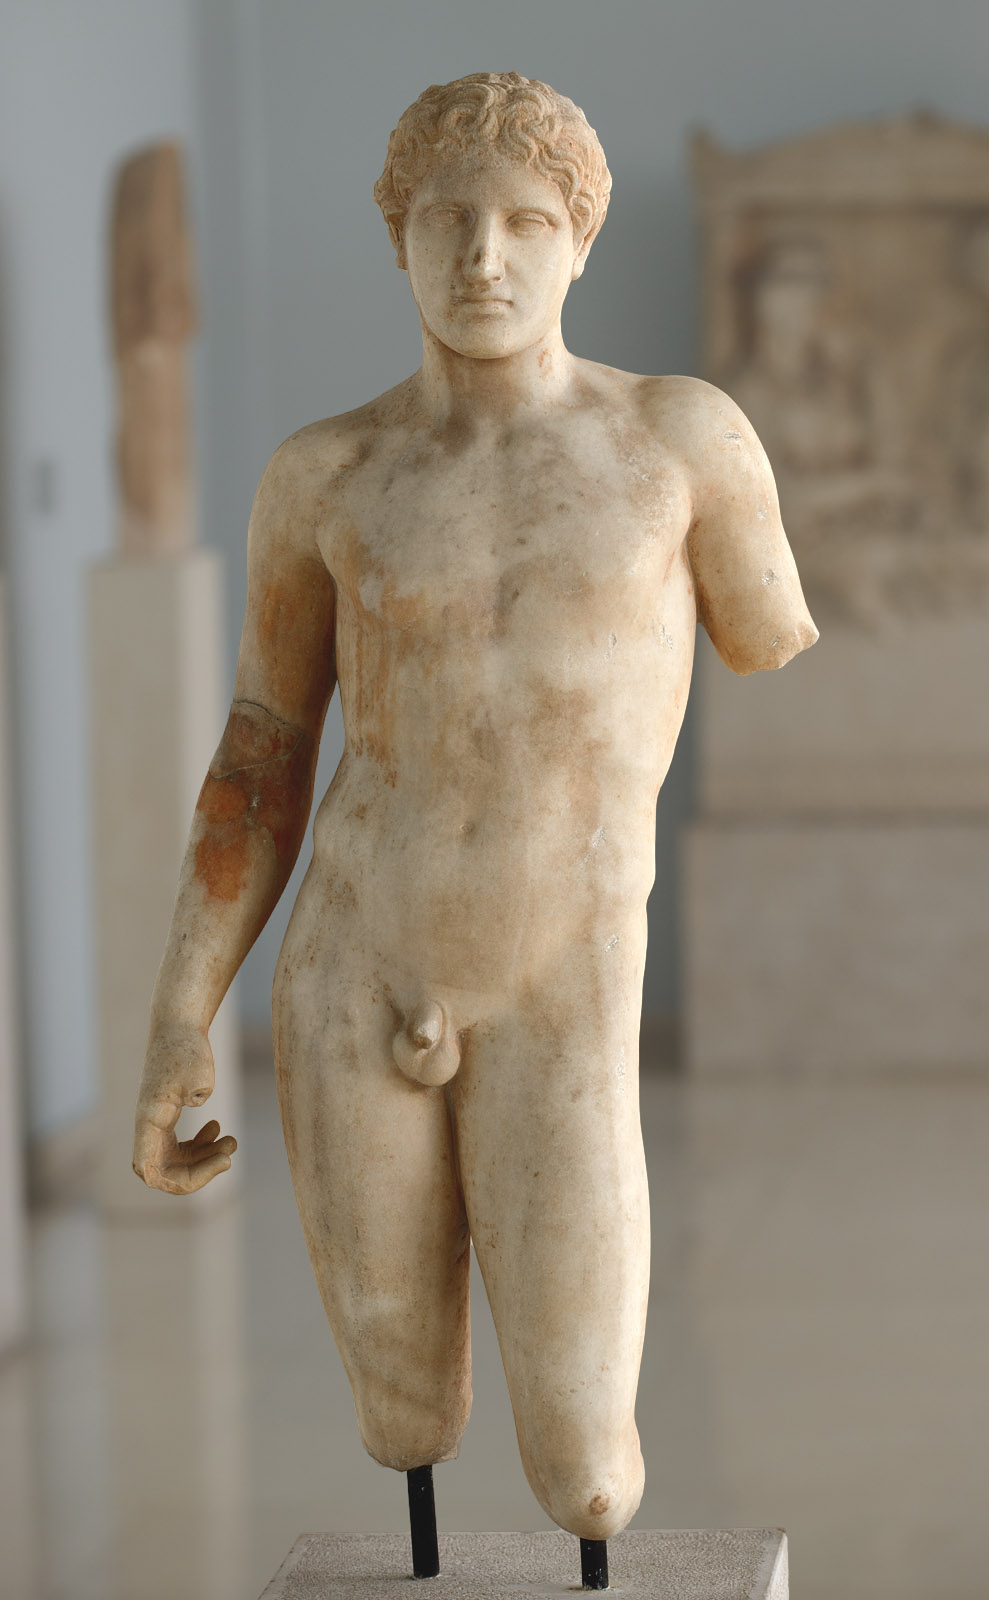 Statue of a young athlete (perhaps, funerary). Marble. Ca. 400 BCE. Inv. No. 430. Athens, Archaeological Museum of Piraeus